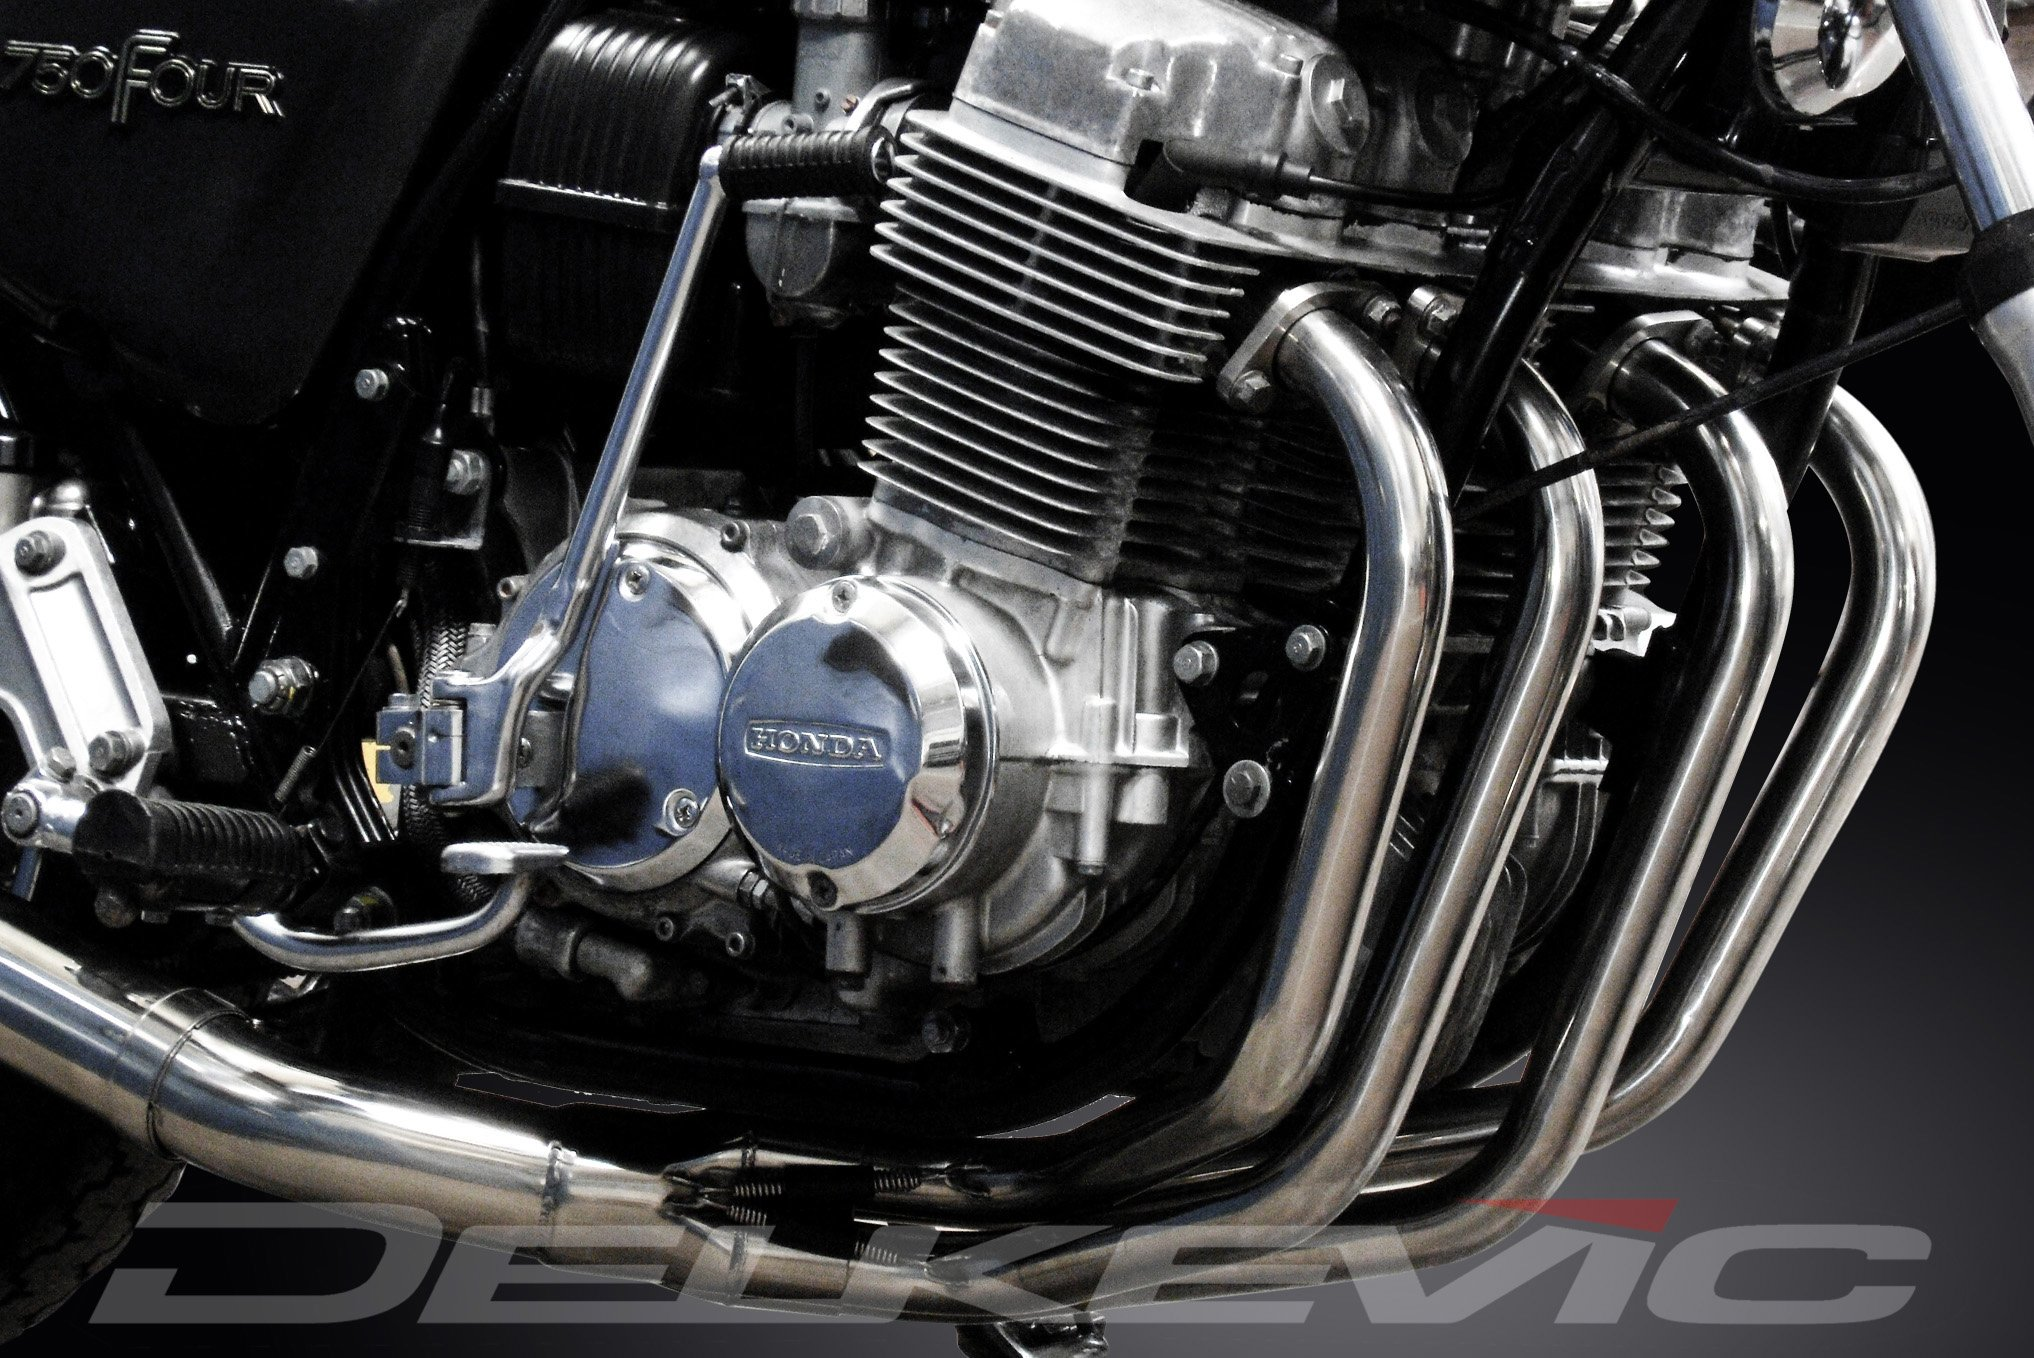 Honda CB750F Super Sport 4-1 Manifold Header Exhaust Stainless Steel Downpipes 75 76 by Delkevic